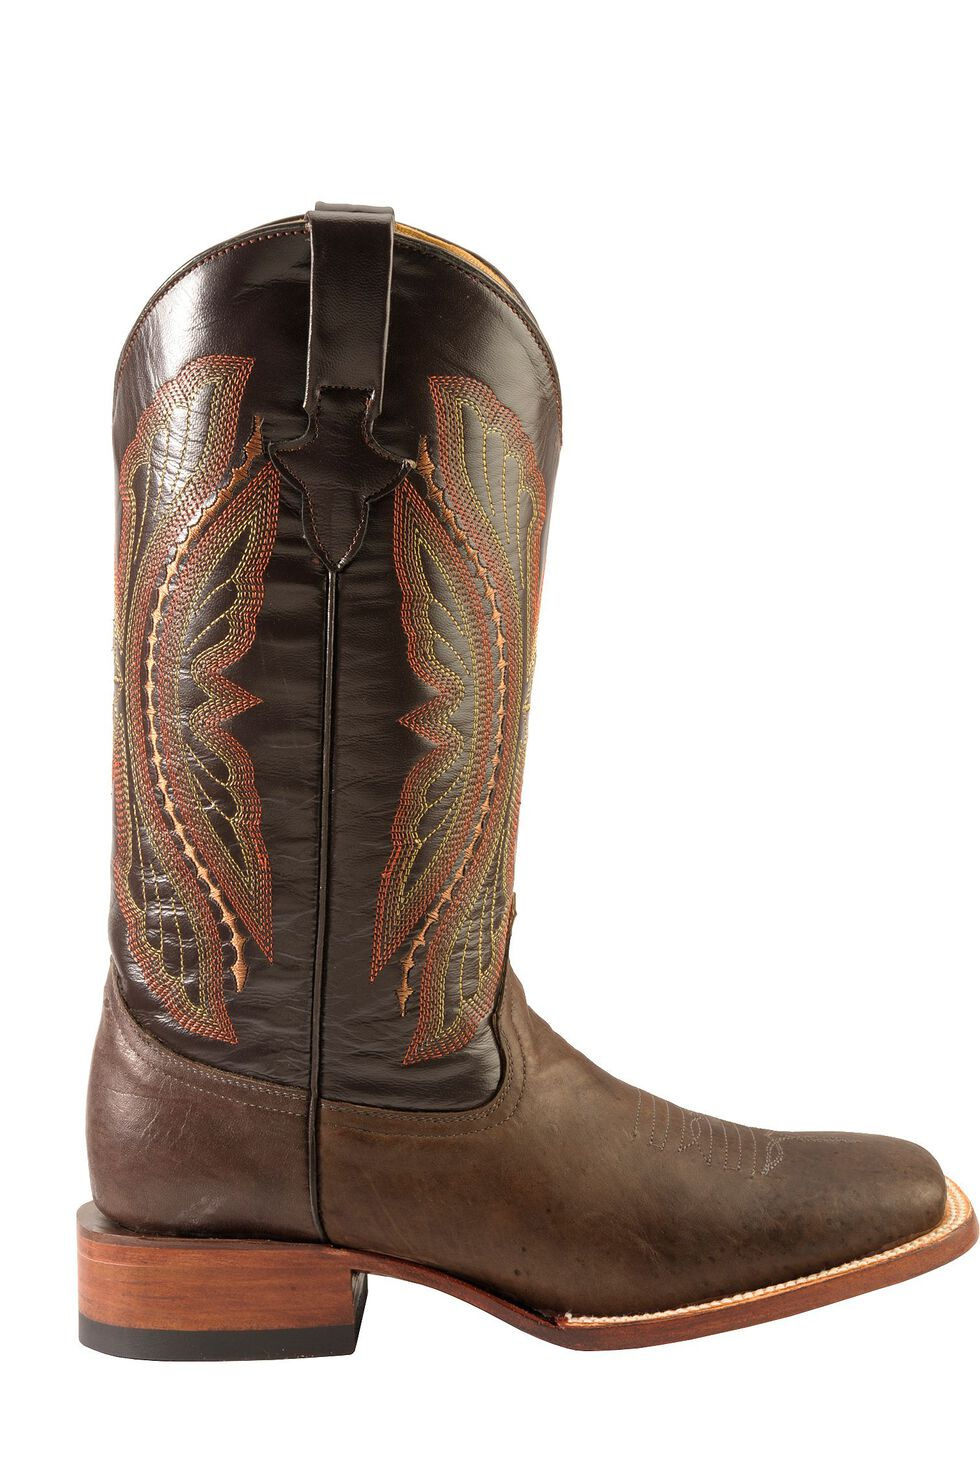 Ferrini Chocolate Distressed Kangaroo Cowboy Boots - Wide Square Toe, Chocolate, hi-res